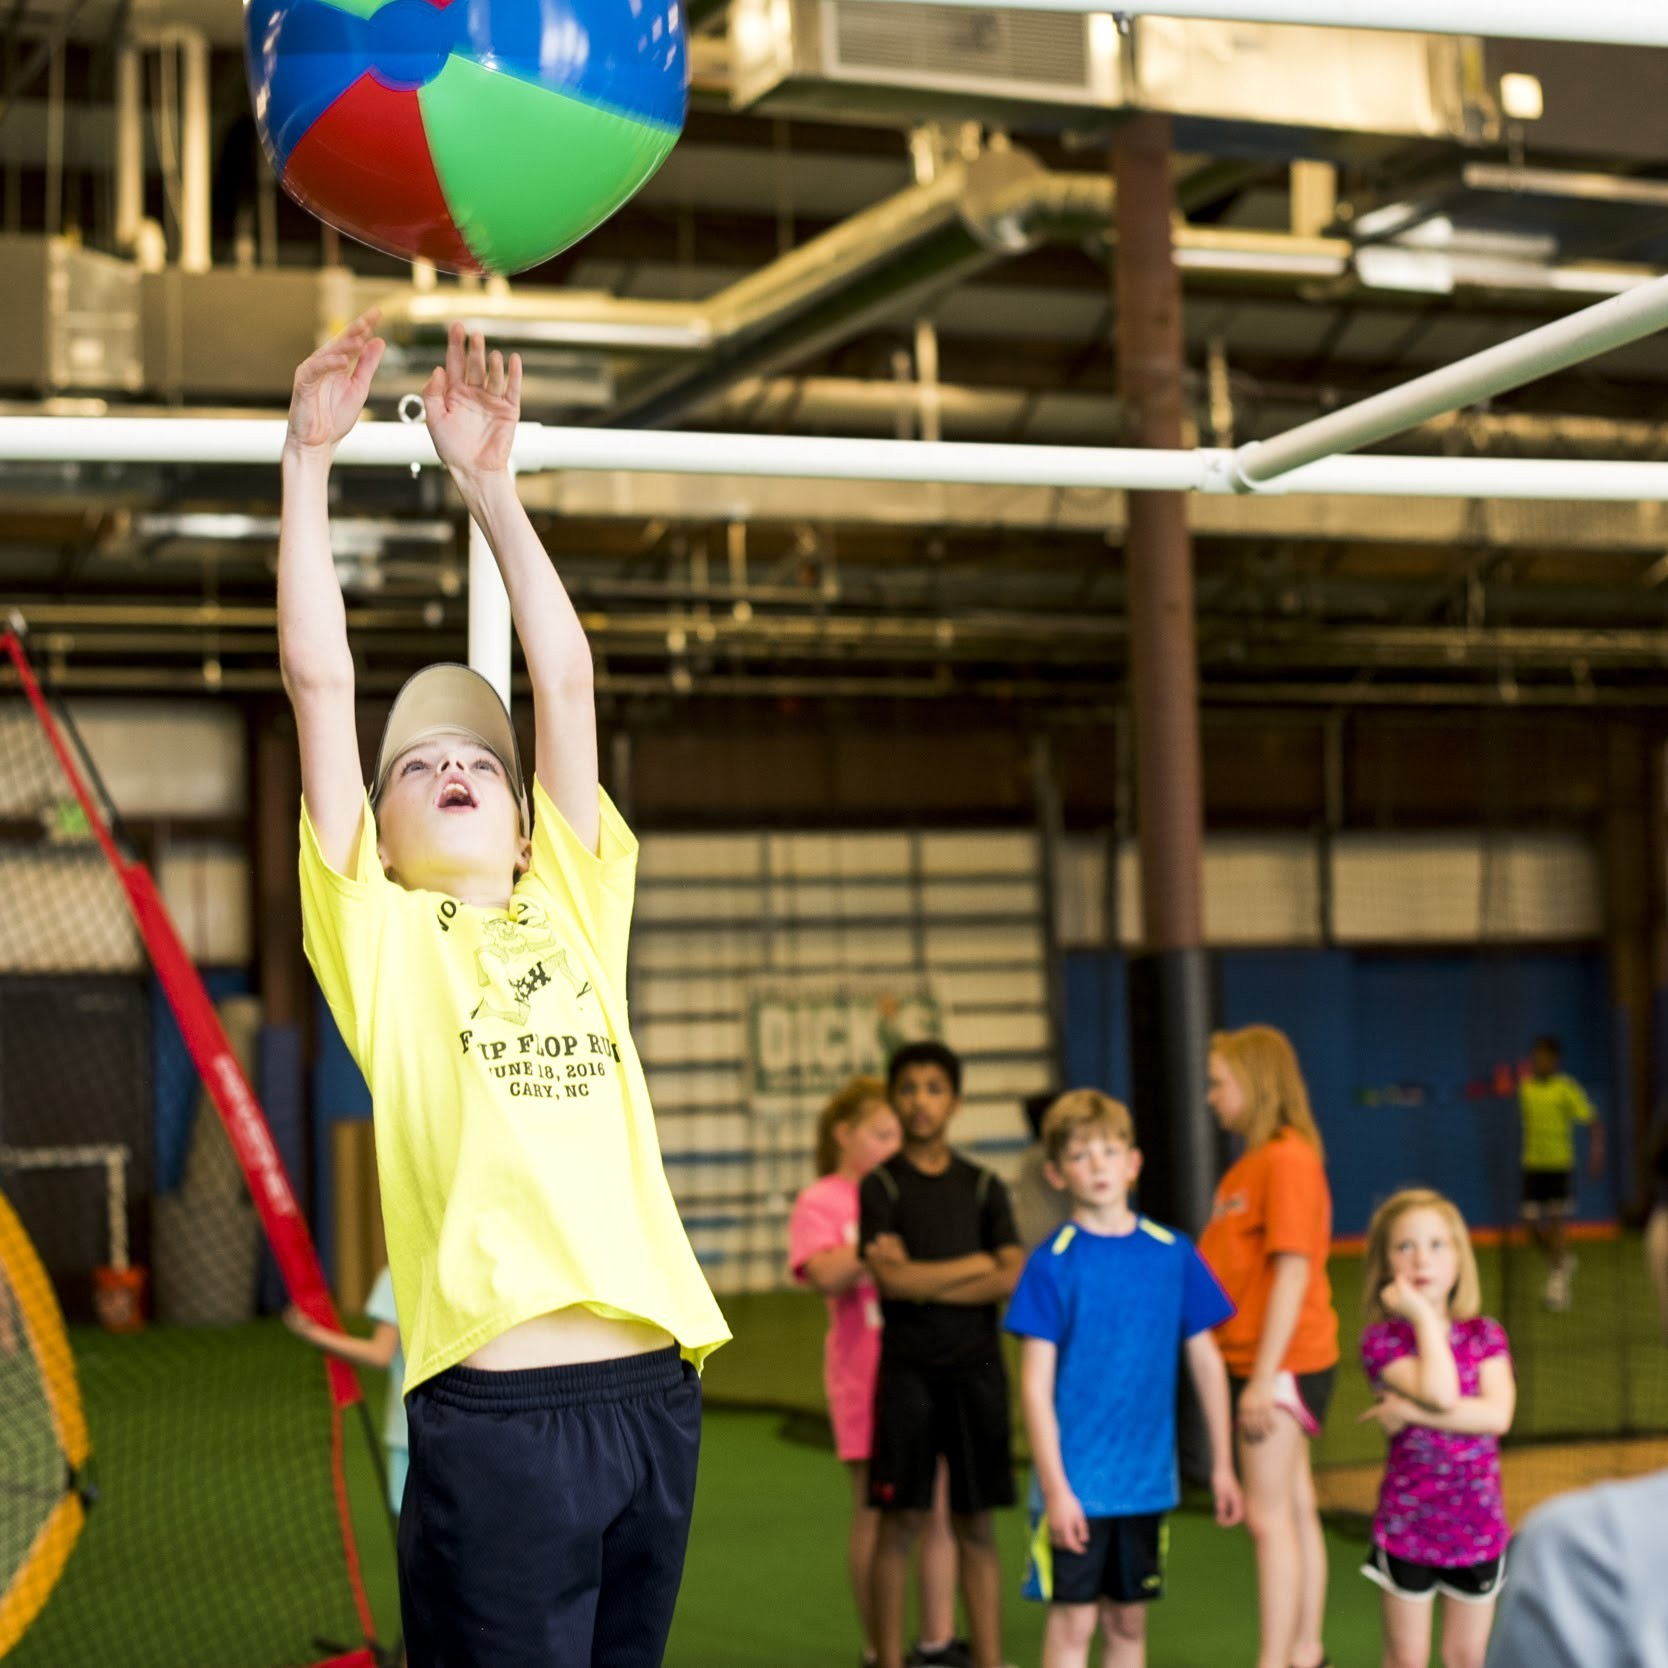 Huge Indoor Courts Turf Fields And Baseball Batting Cages PLUS Our Party Room Provide The Perfect Sports Birthday Space